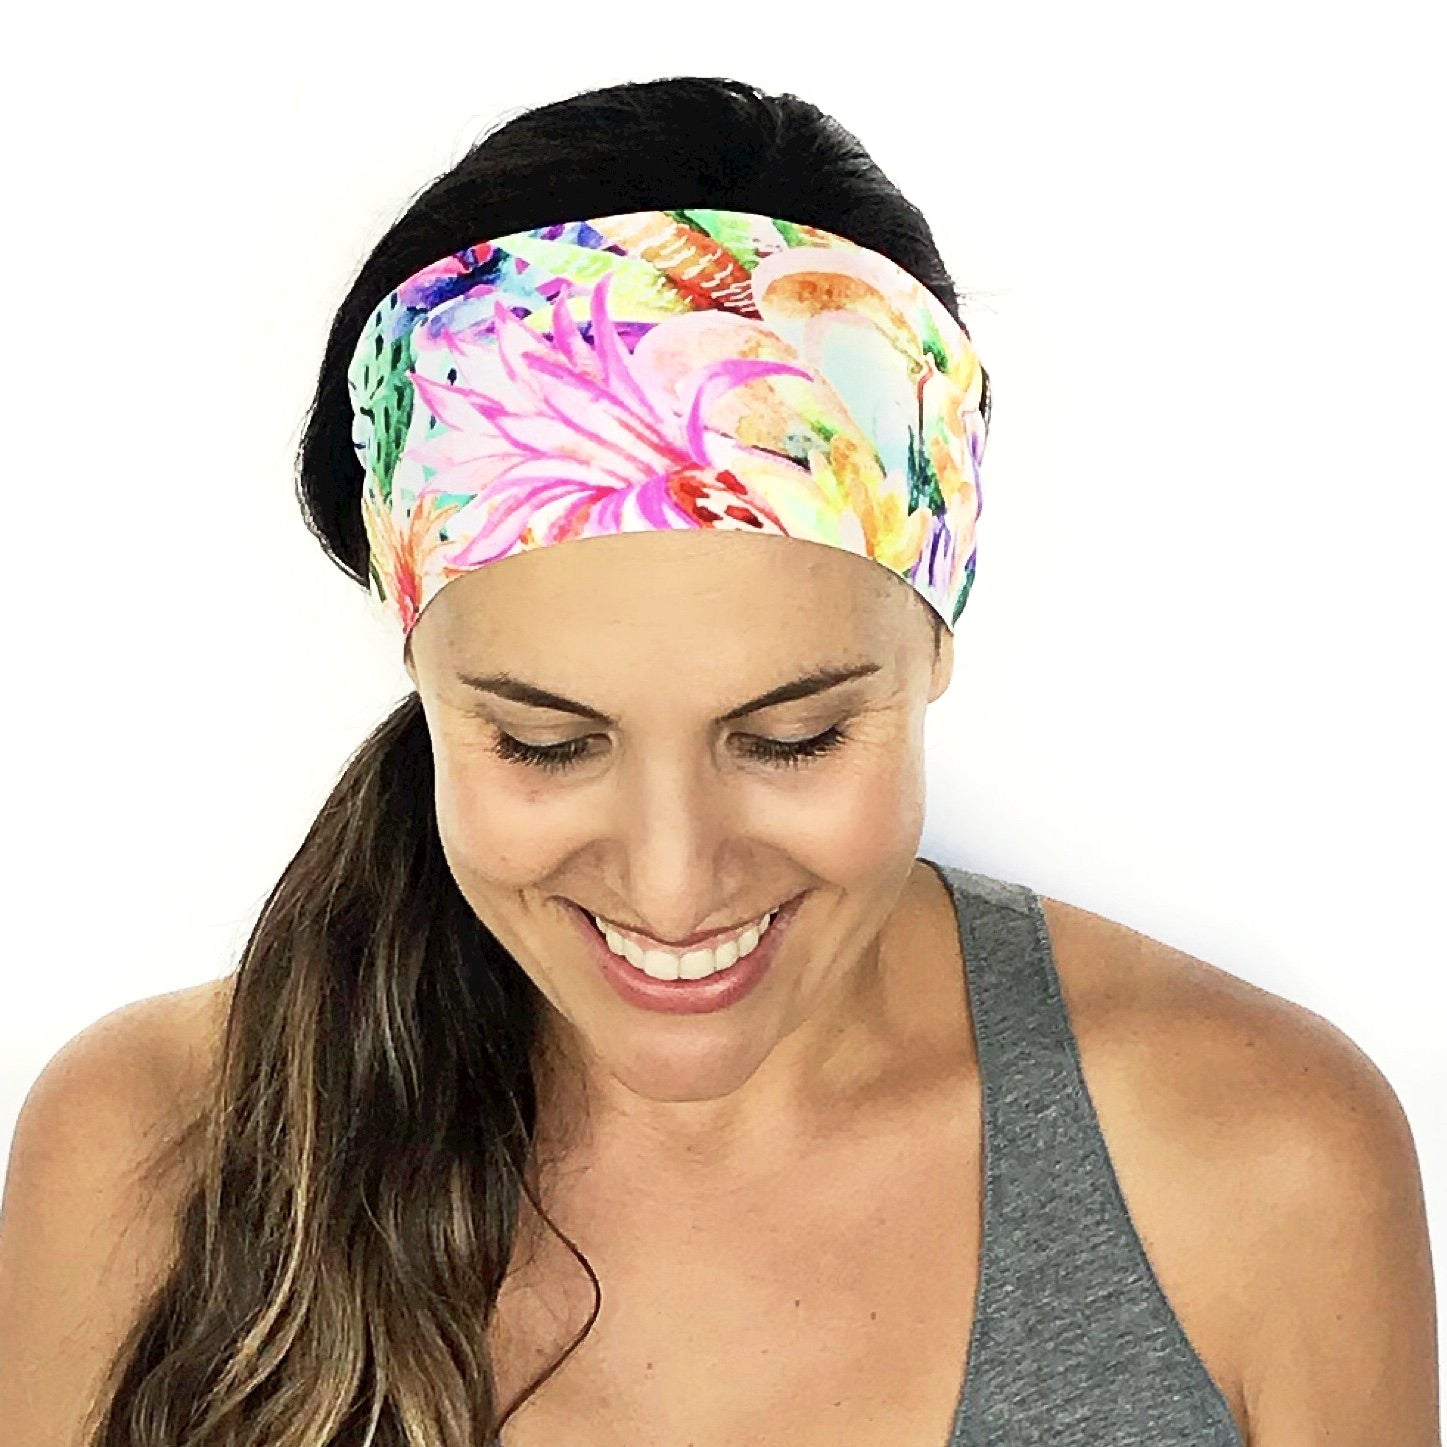 Great Escape Workout Headband